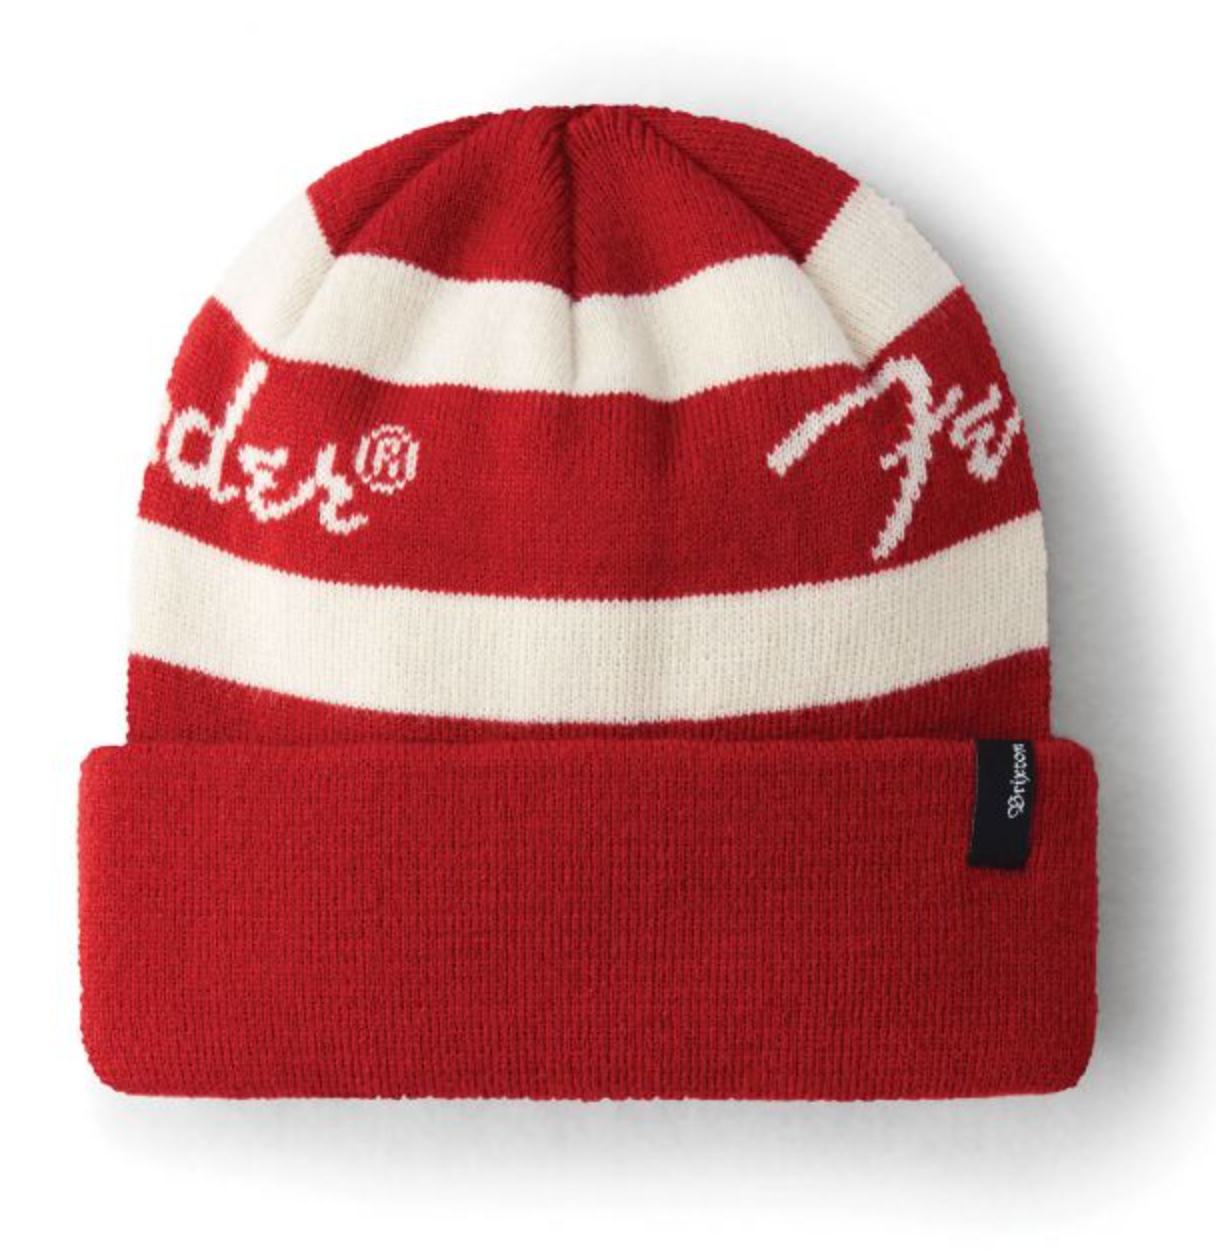 Brixton x Fender Sonic Beanie - Candy Apple Red